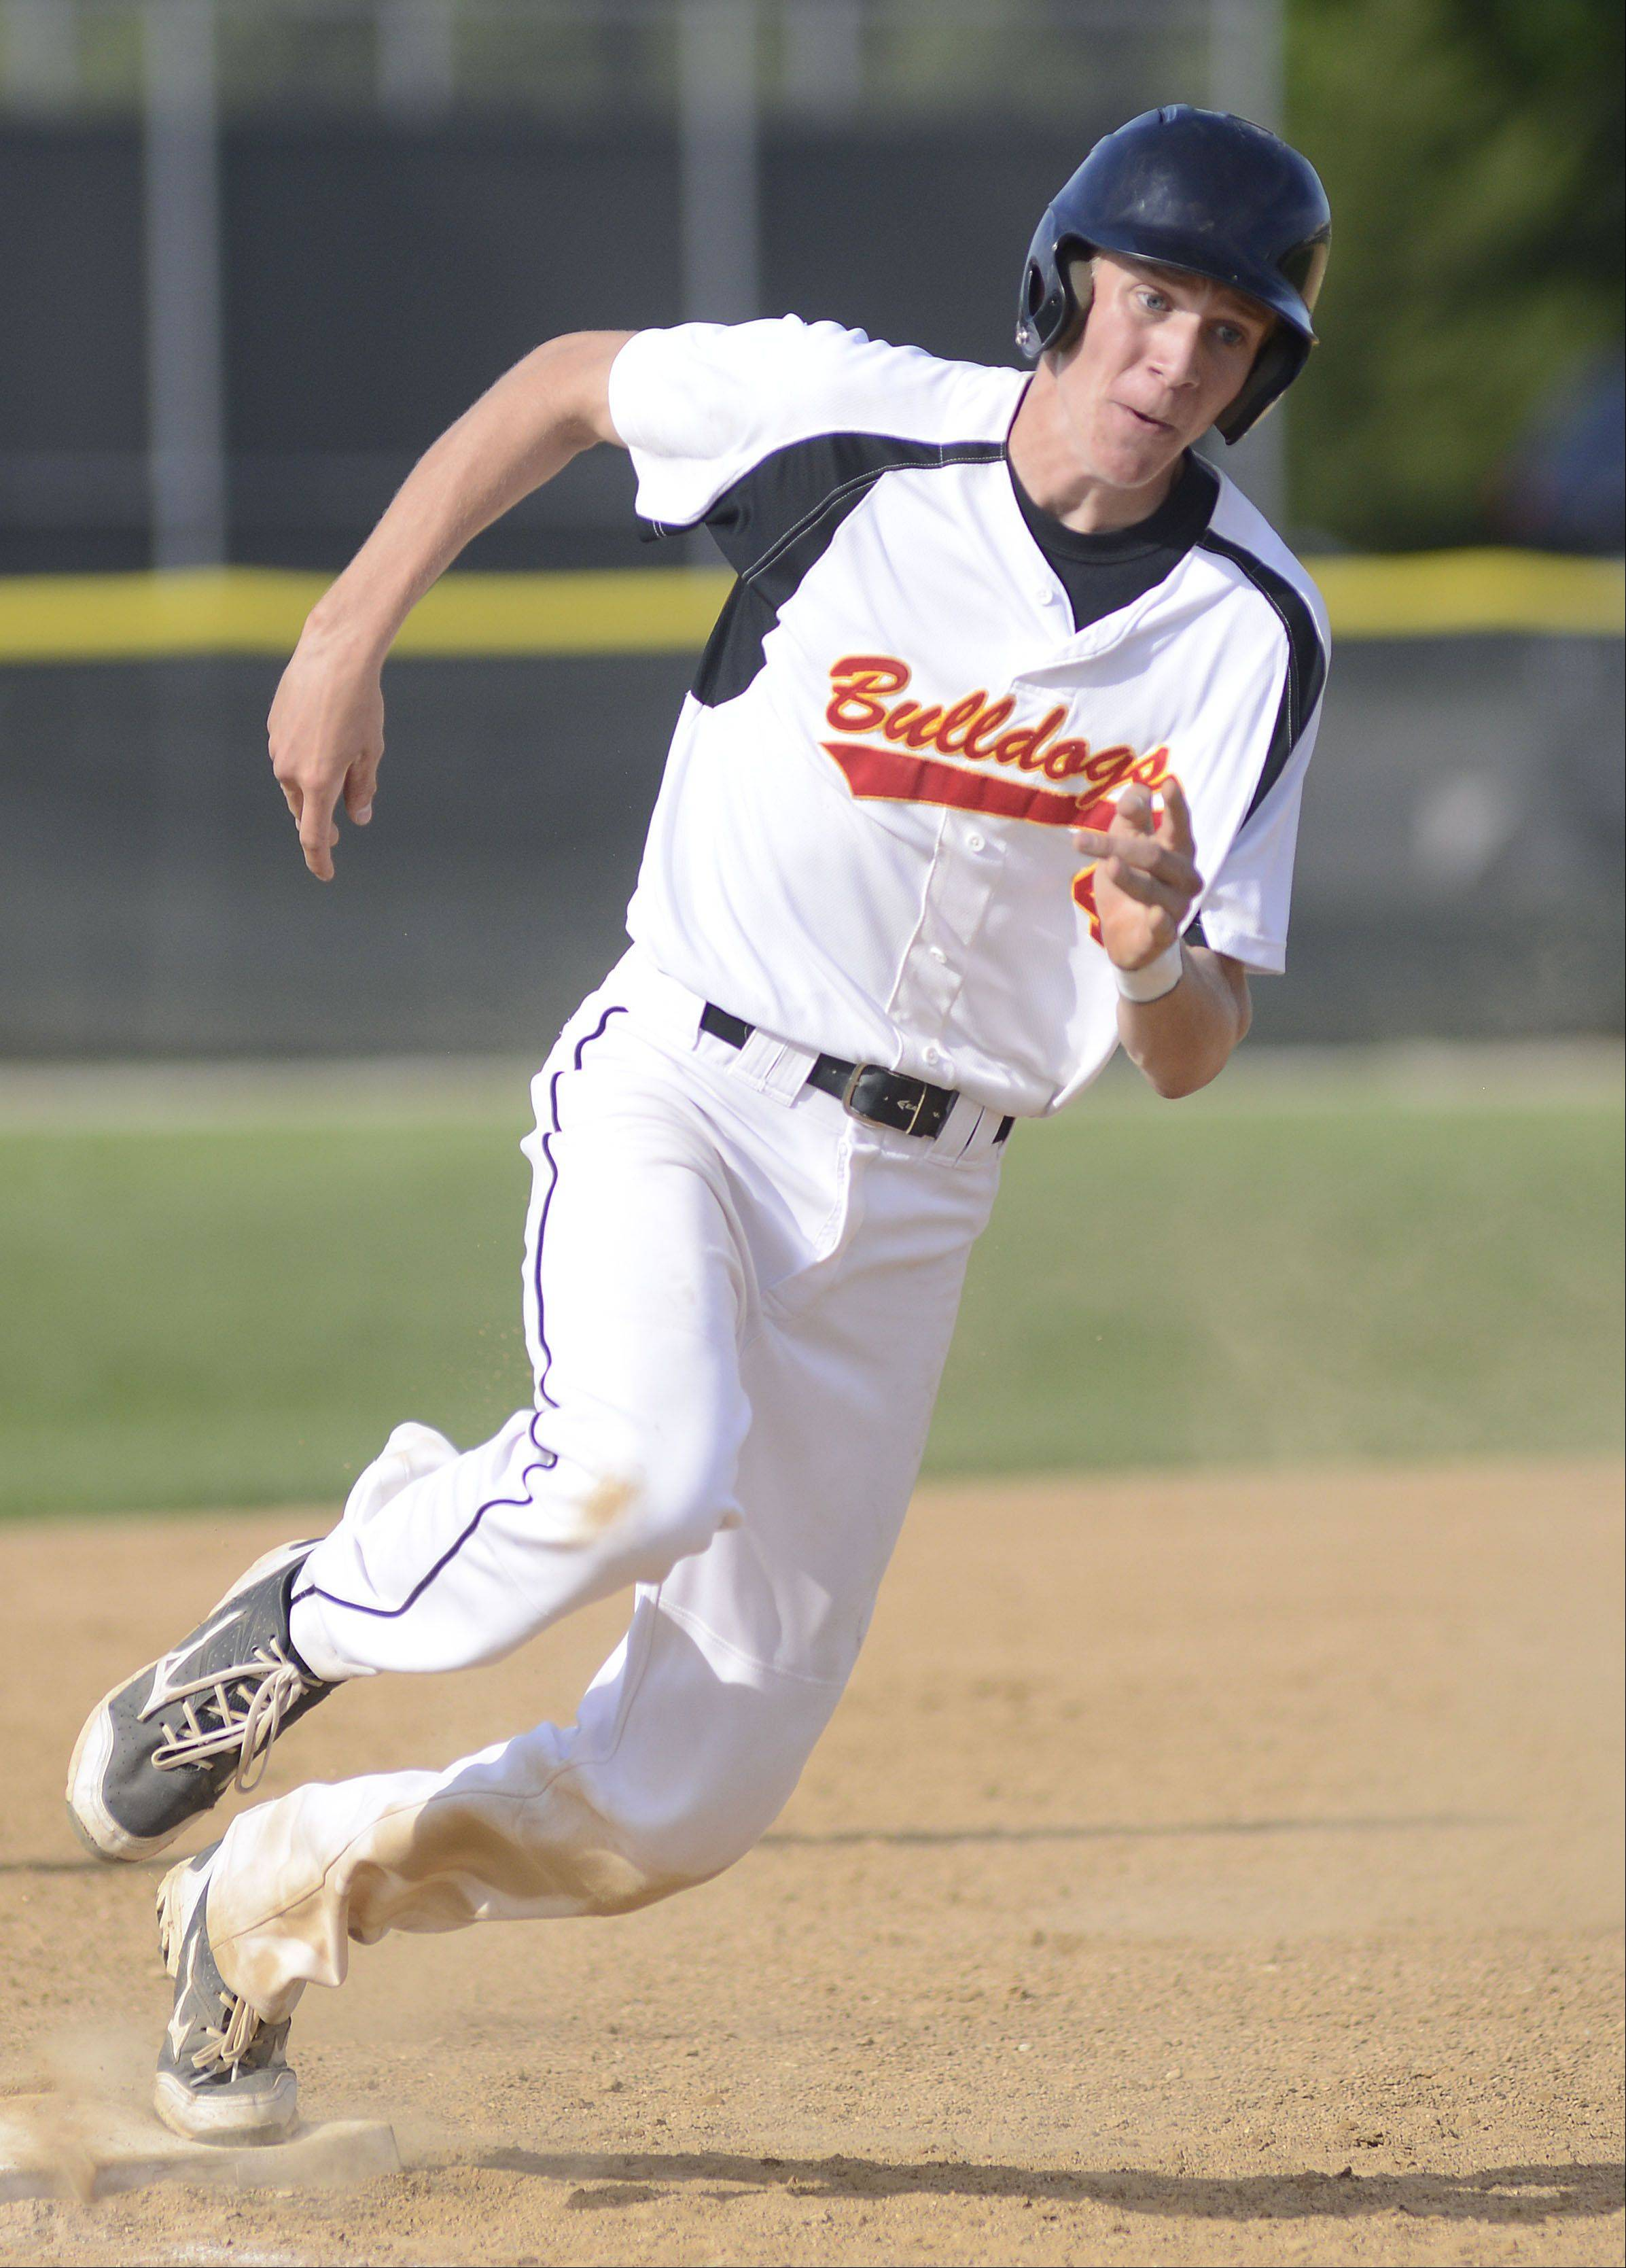 Batavia's Billy Zwick rounds third base heading for home plate in the first inning on Wednesday, May 15.